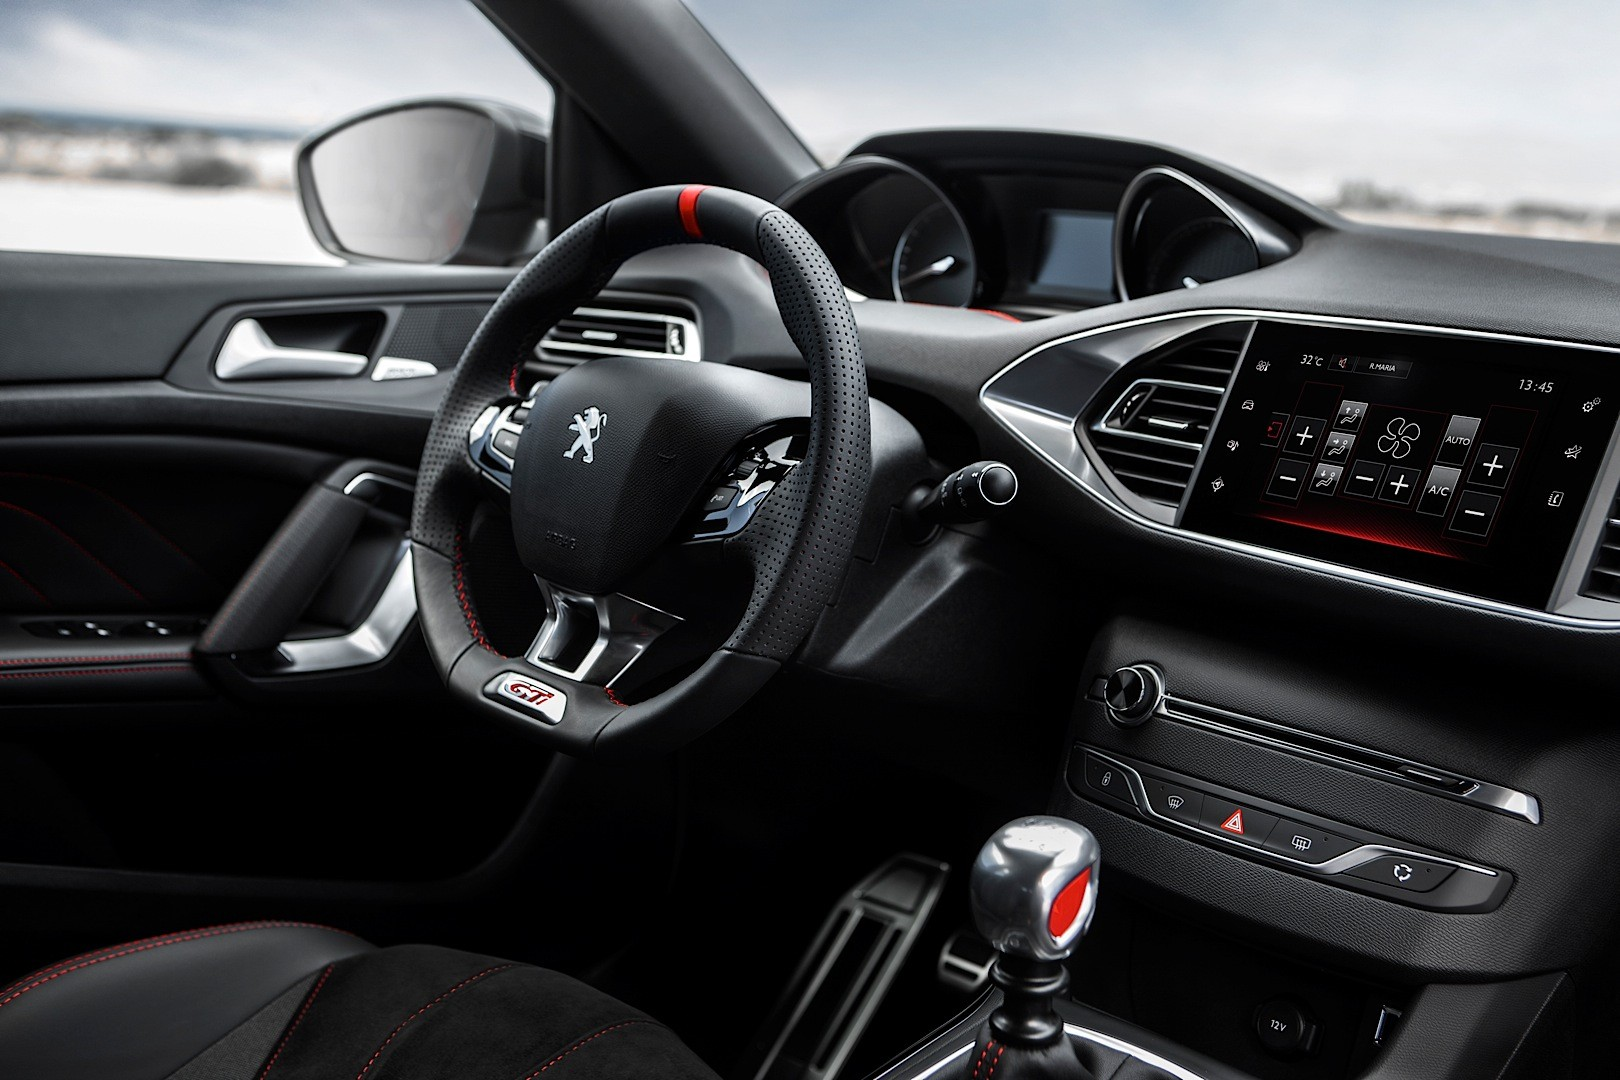 Peugeot 308 GTi Prices Announced, 270 HP Model Starts at €37,200